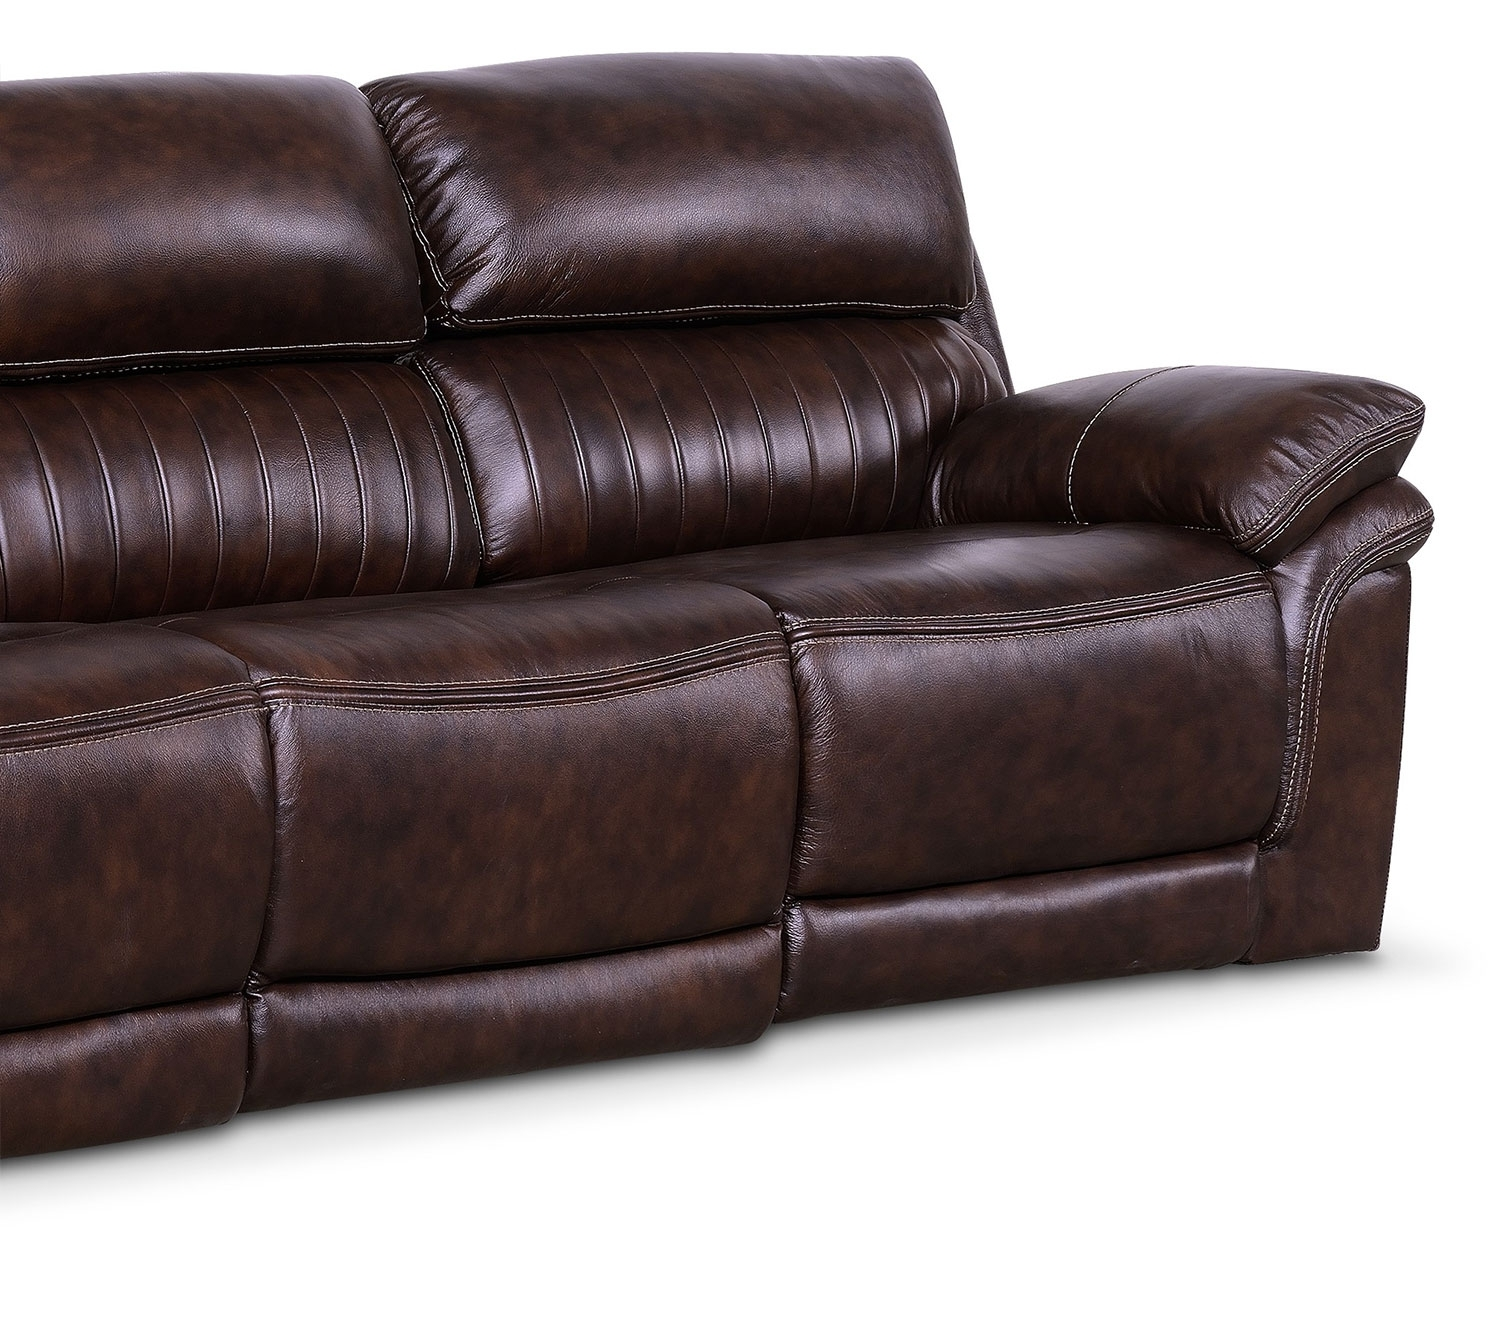 Monterey 3 Piece Power Reclining Sofa – Chocolate | American With Regard To Recliner Sofas (Image 6 of 10)